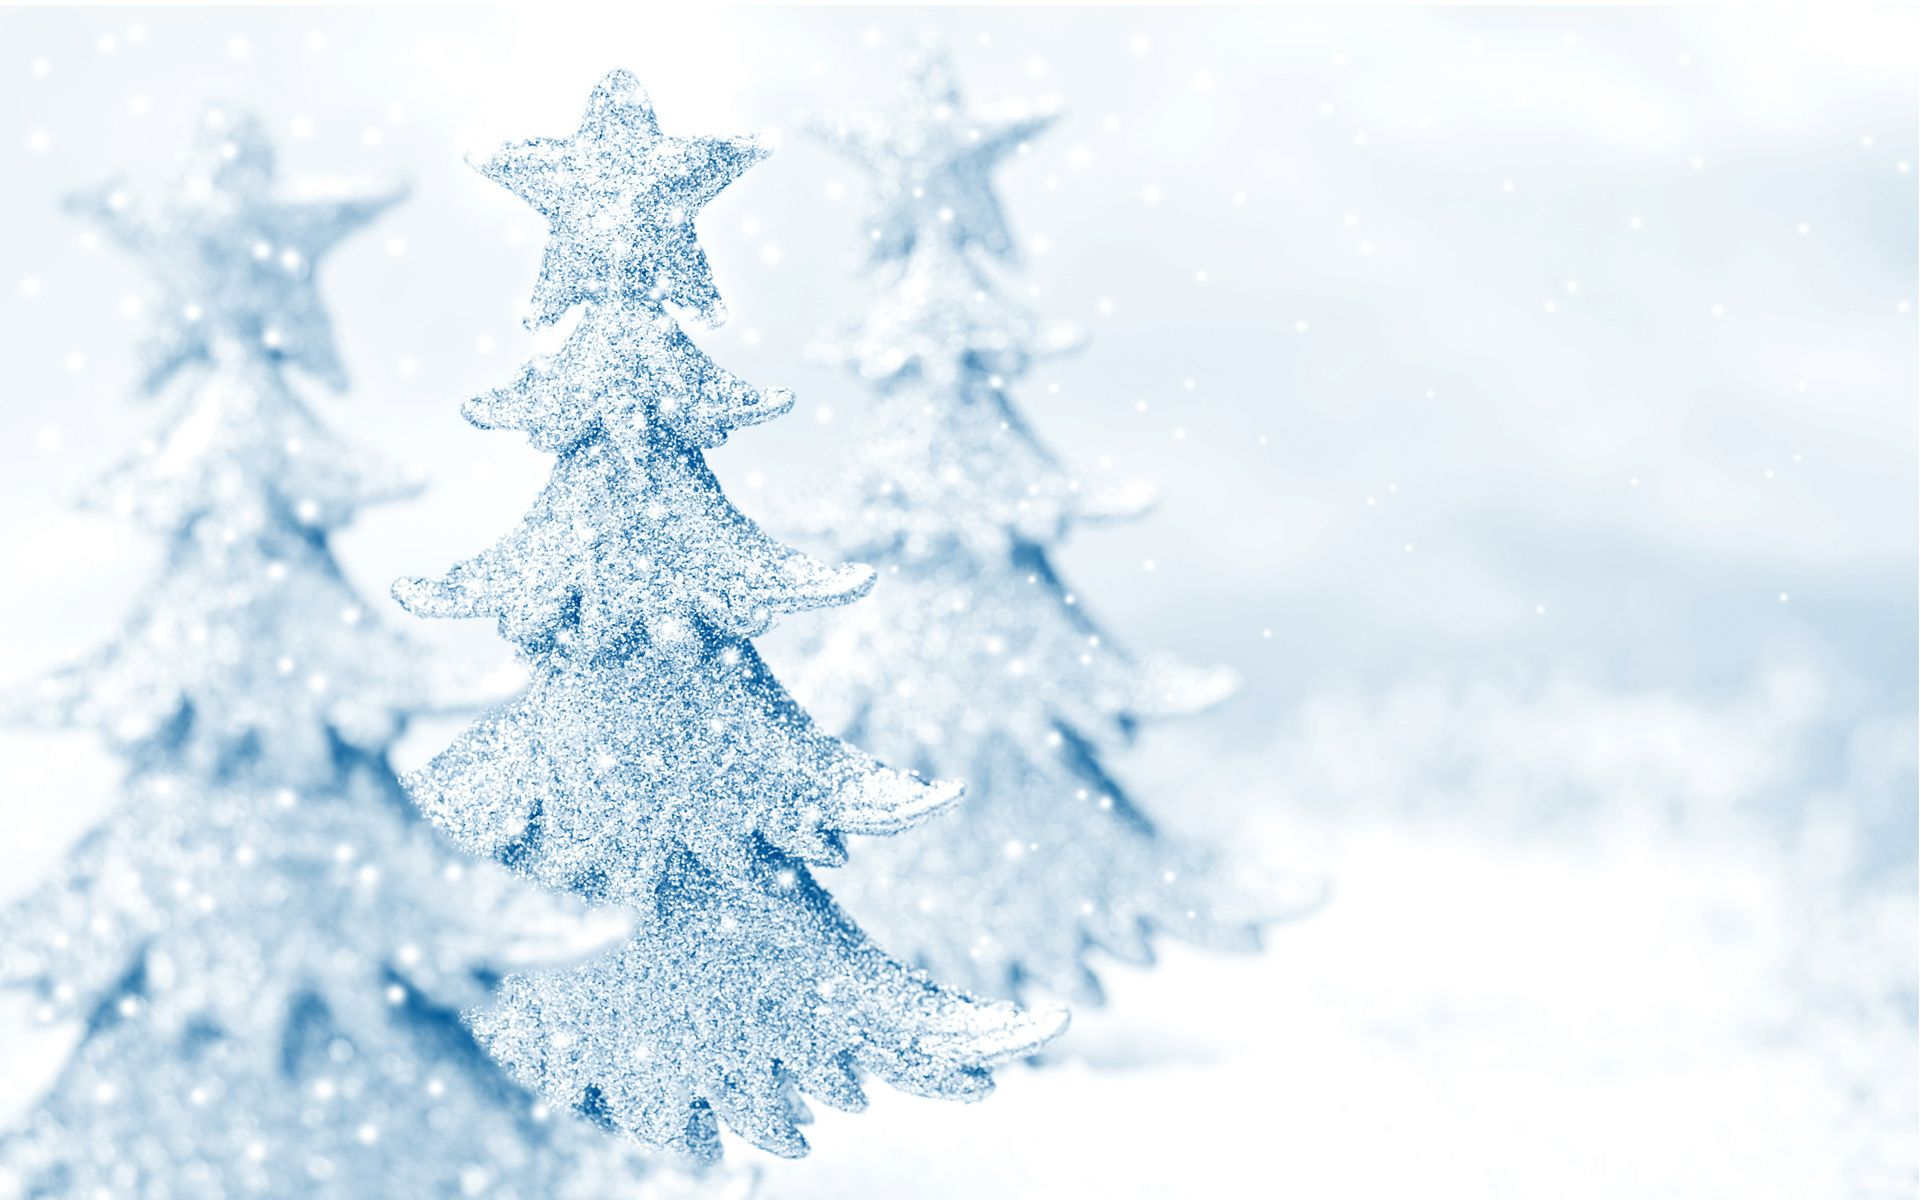 White Christmas Snow Background.Pin By Kirsten On Iphone Wallpapers Christmas Tree Images